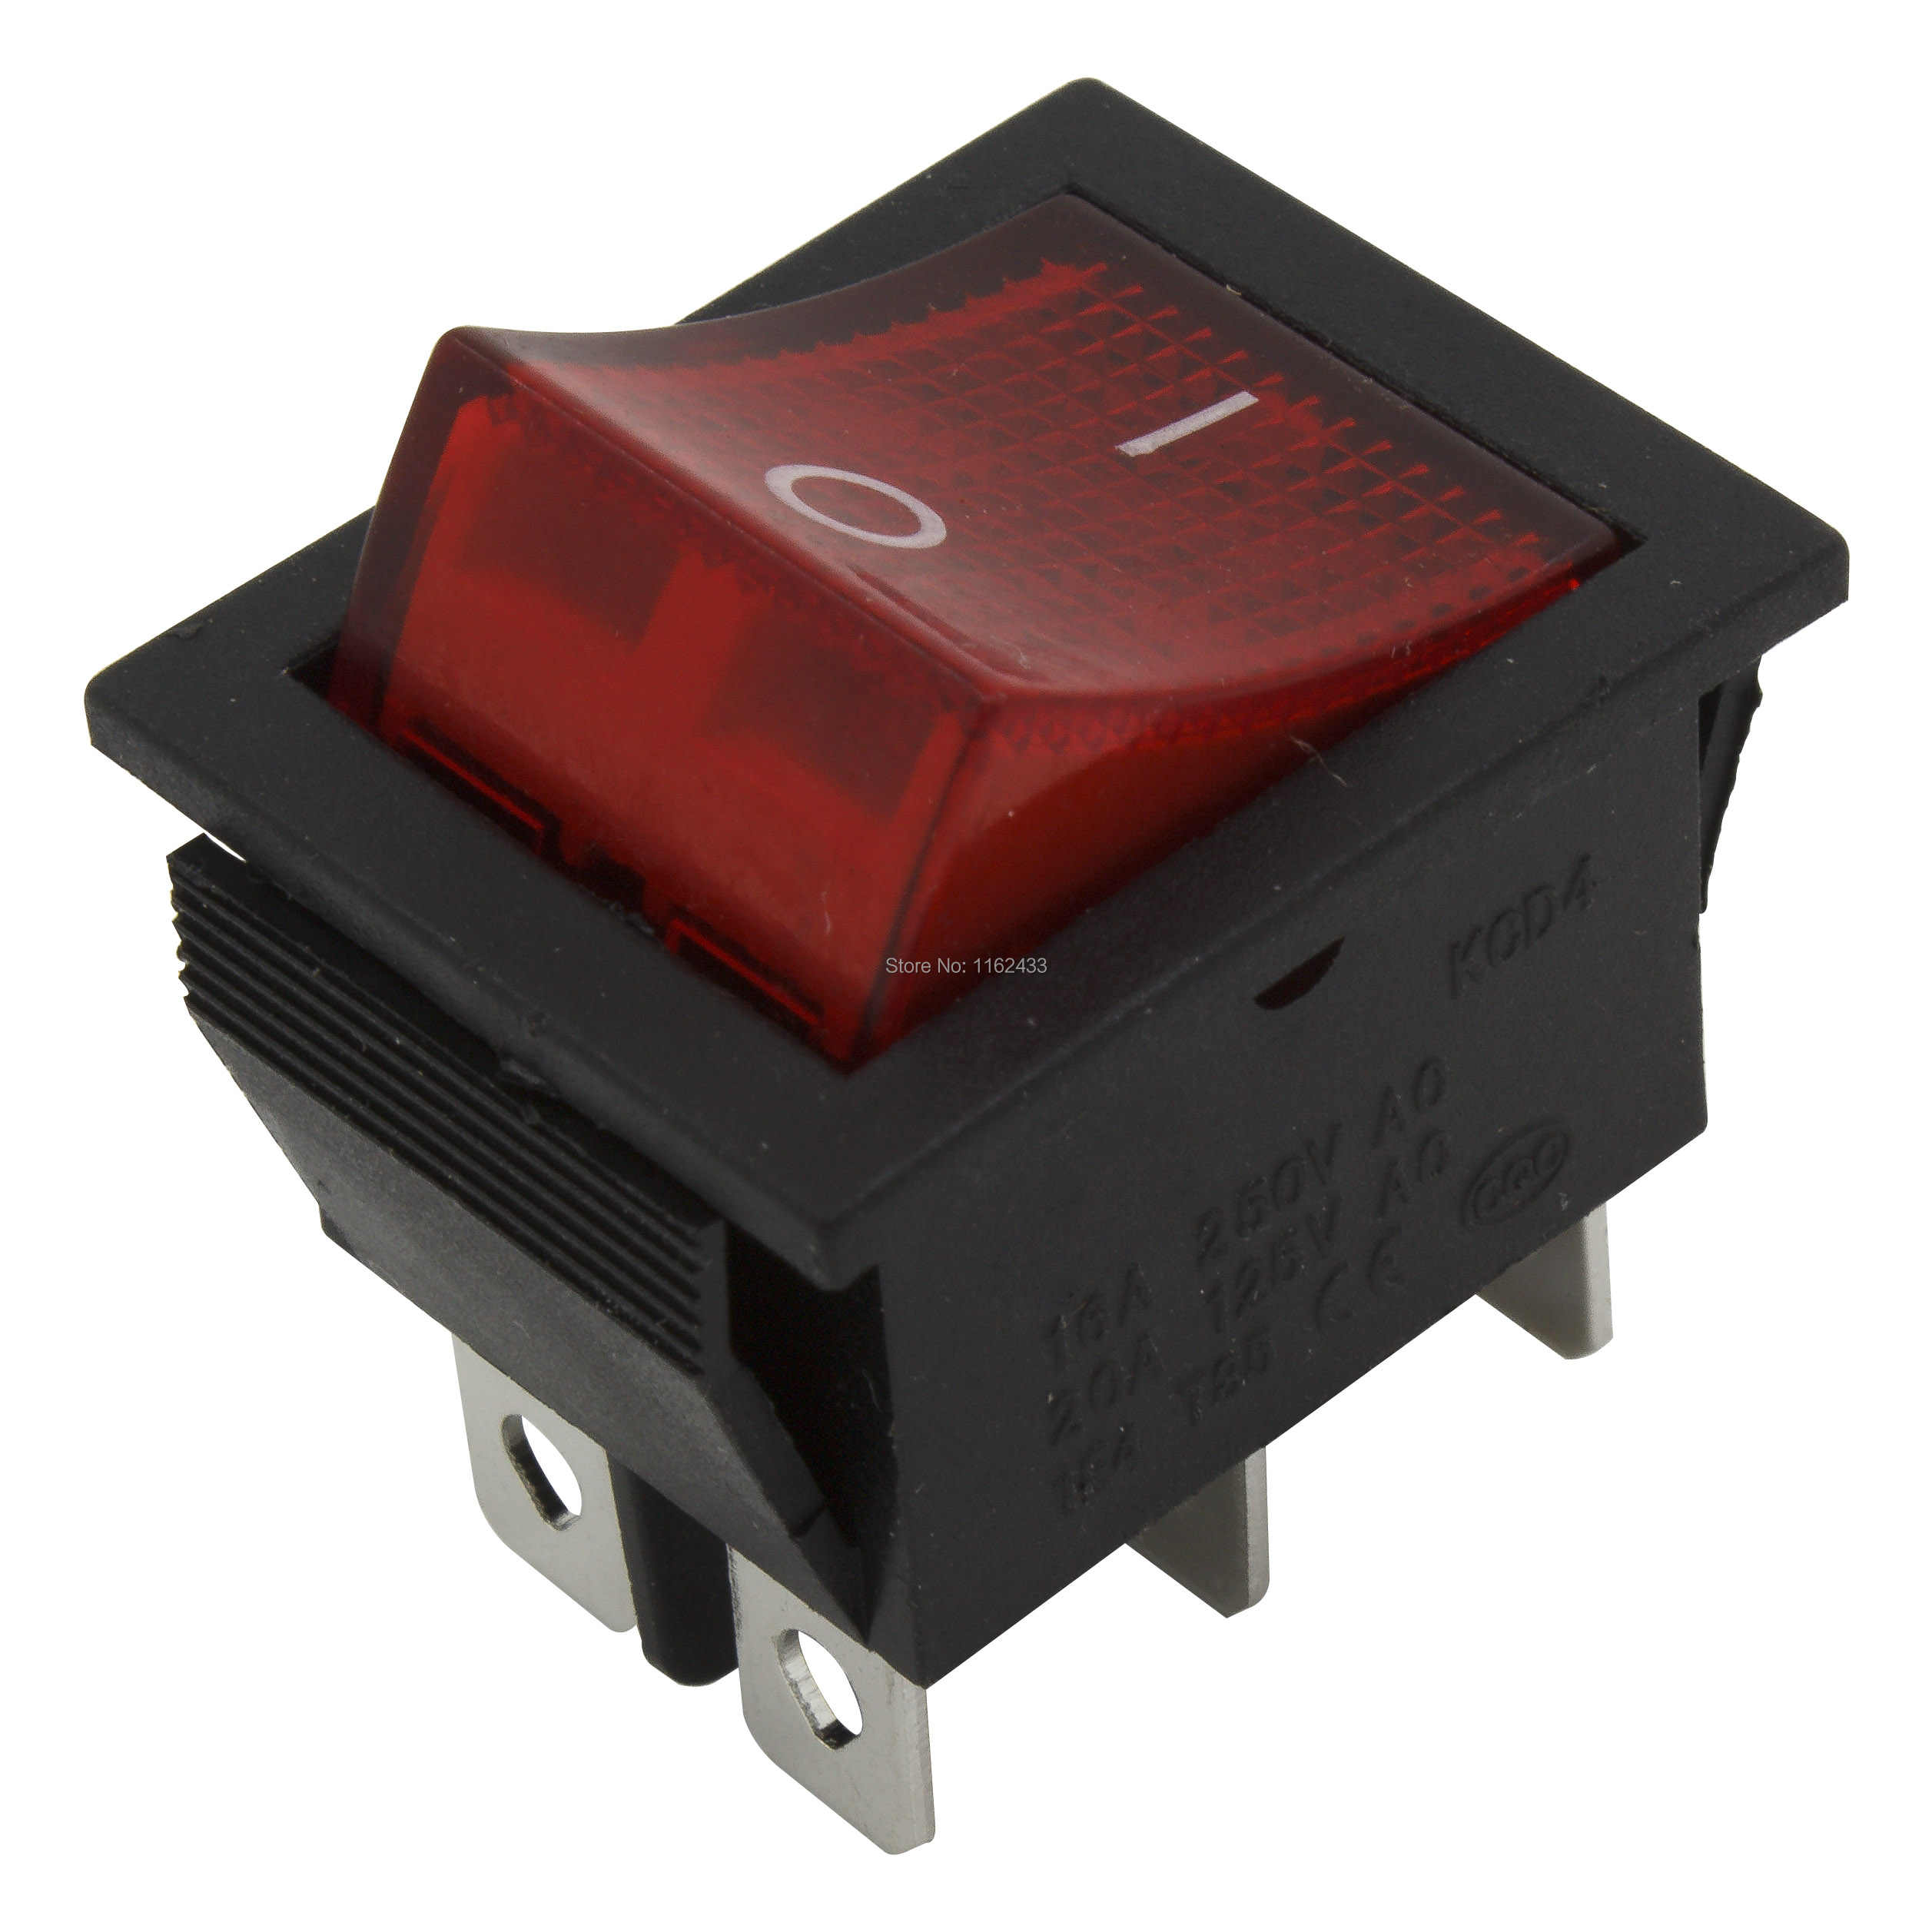 5 Buah/Banyak KCD4-202N Melubangi 26X22 Mm 6 Pin On-On Perahu Rocker Switch Power Switch dengan 220 V Cahaya